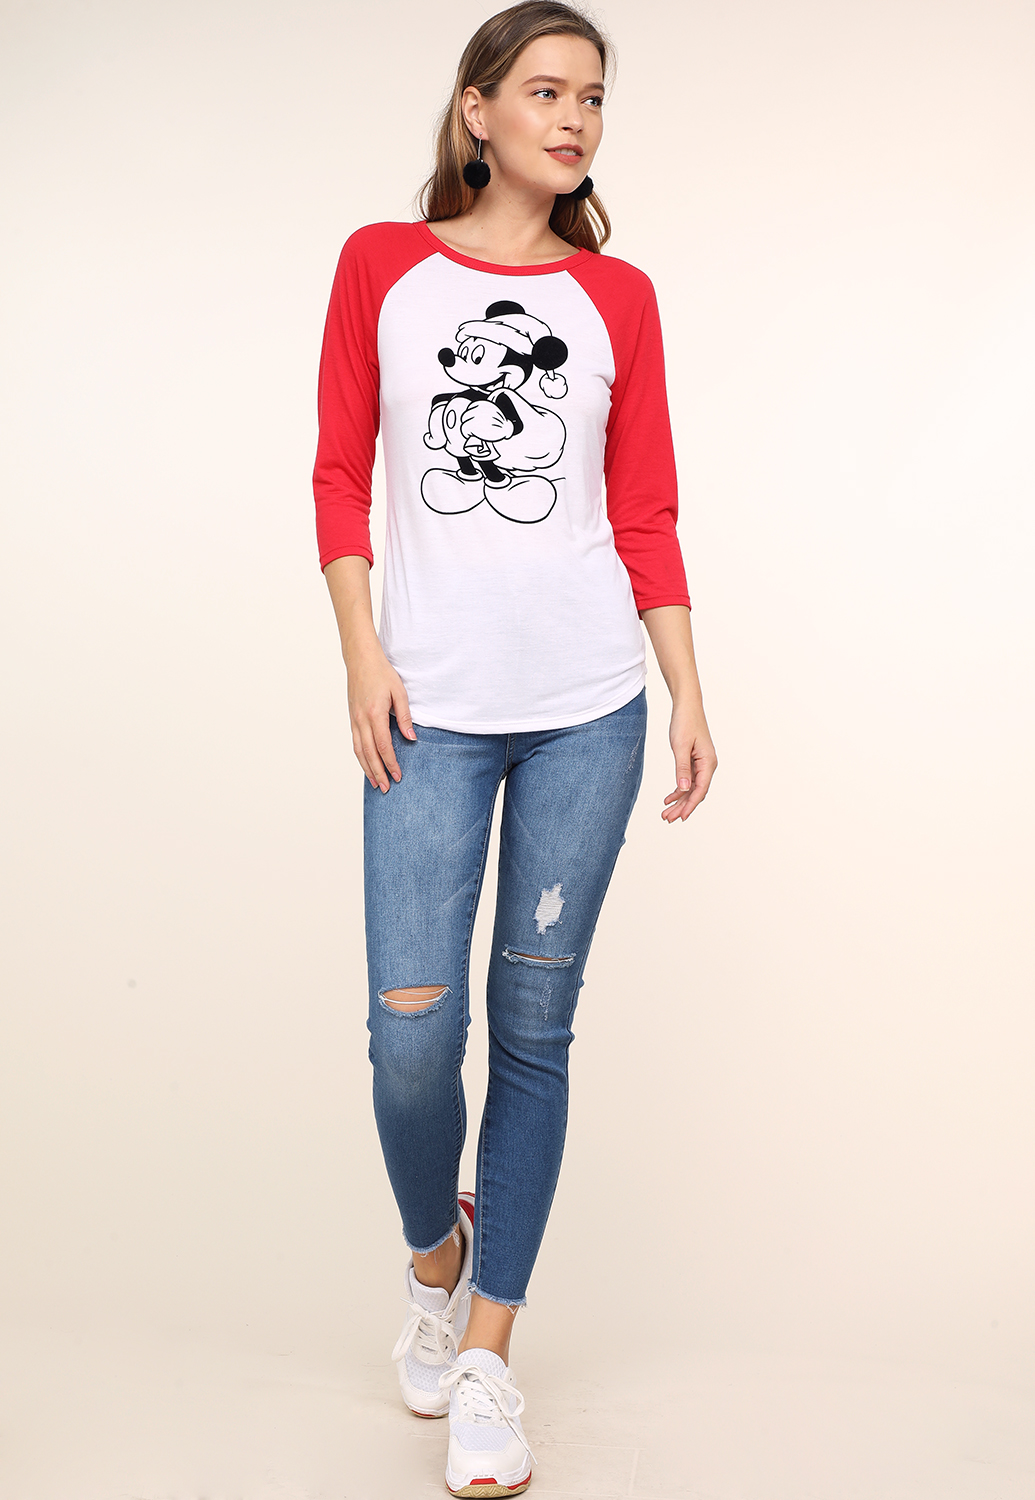 Santa Mickey Mouse Print Top